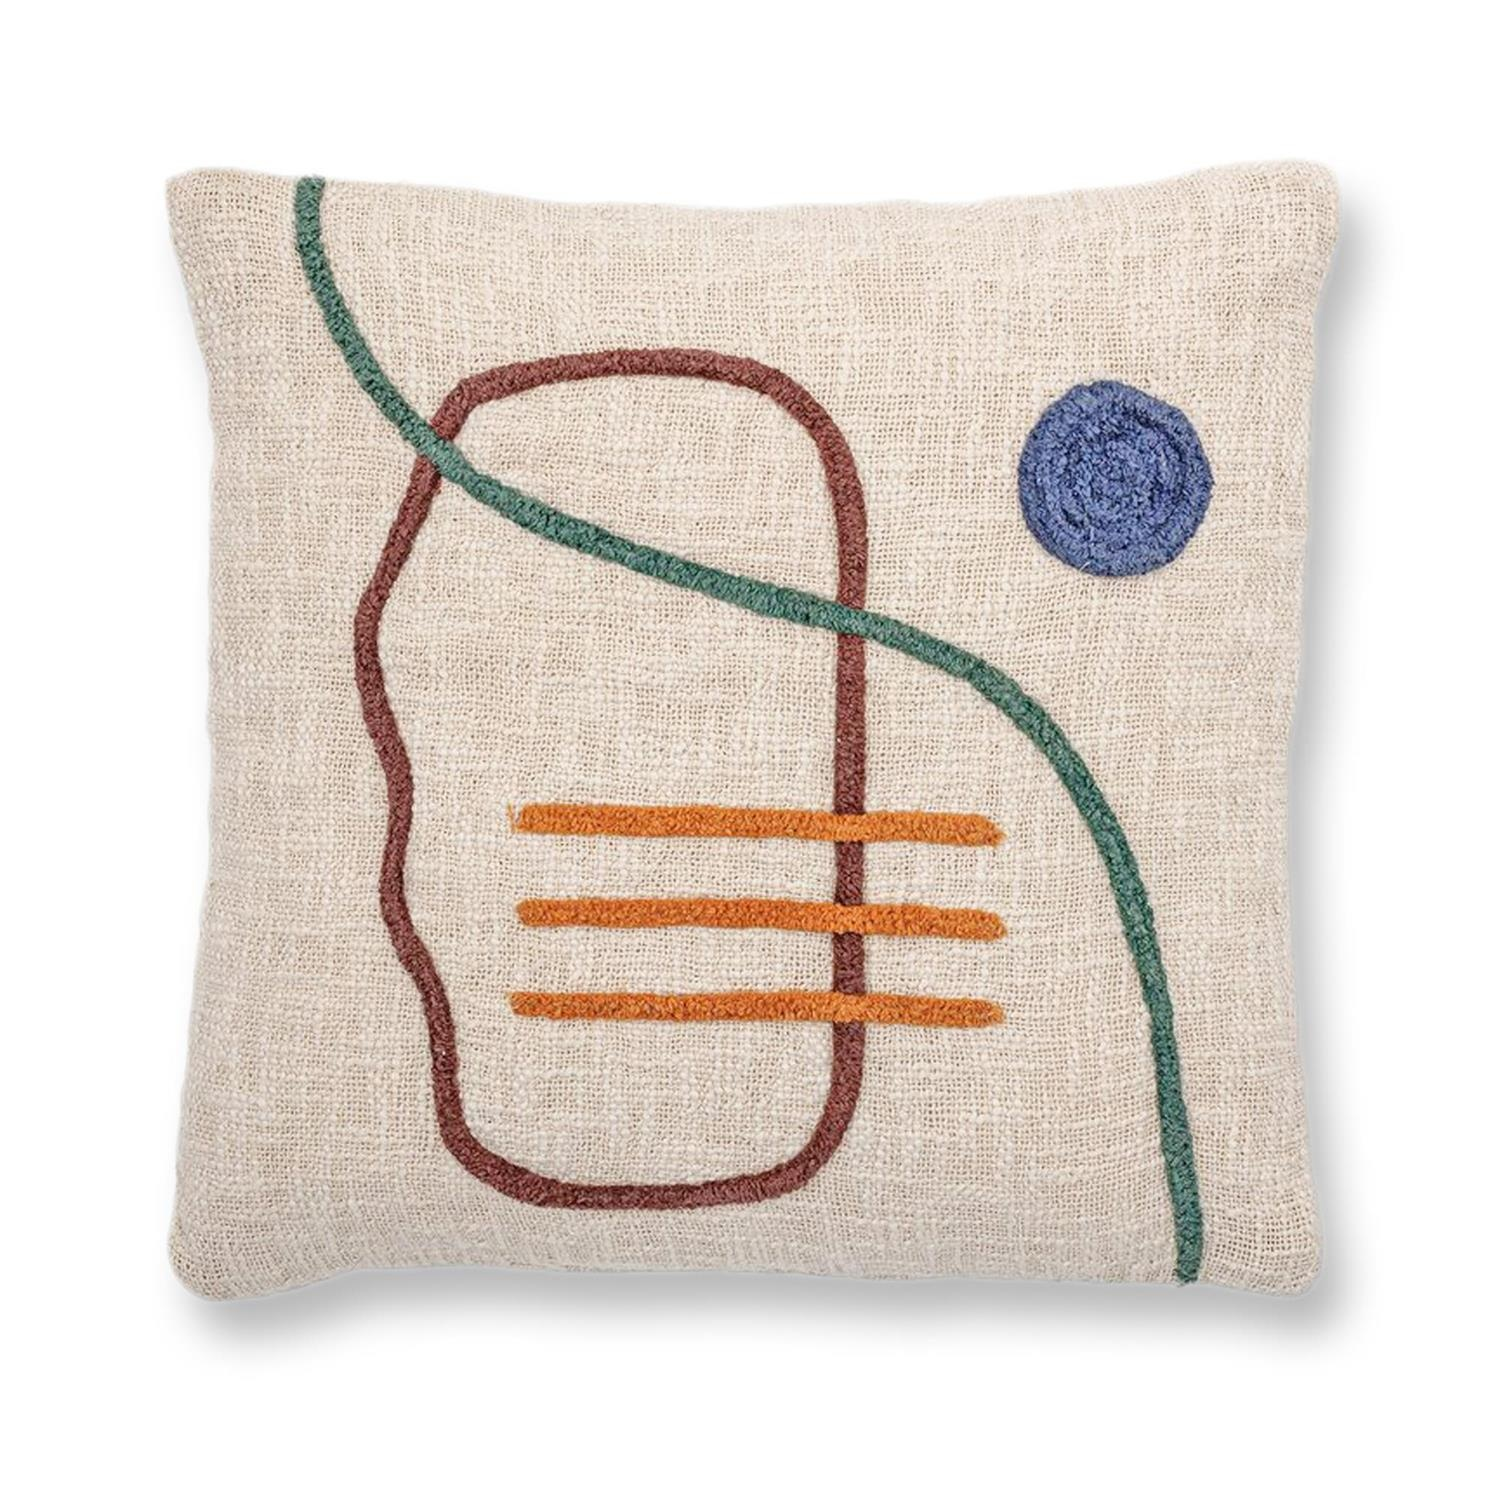 chenille embroidered textured cotton pillow covers indian handmade decorative cushion covers boho pillow cases buy boho pillow cases indian